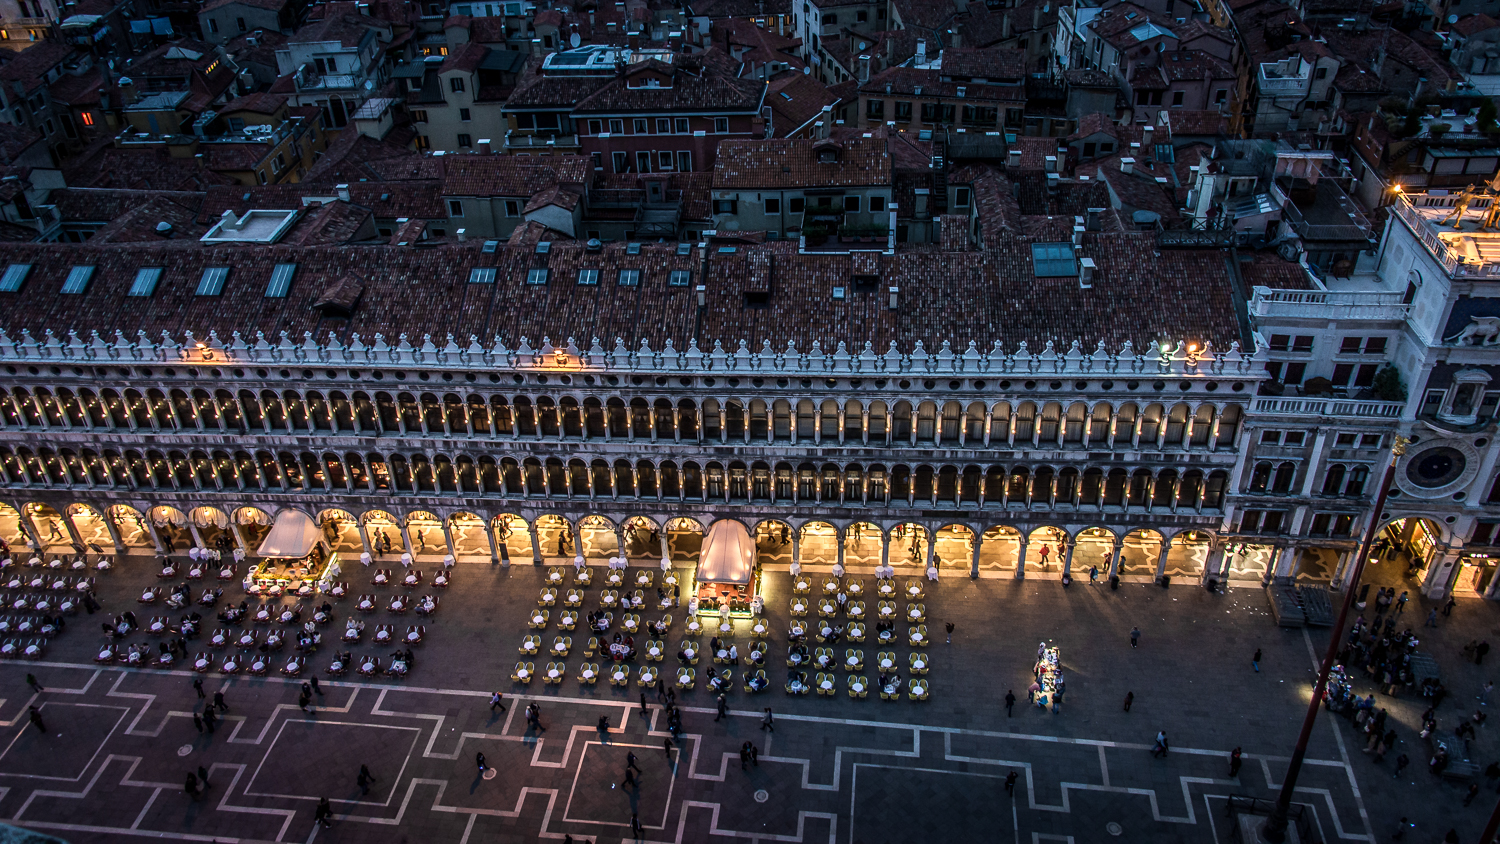 North side of the Piazza San Marco